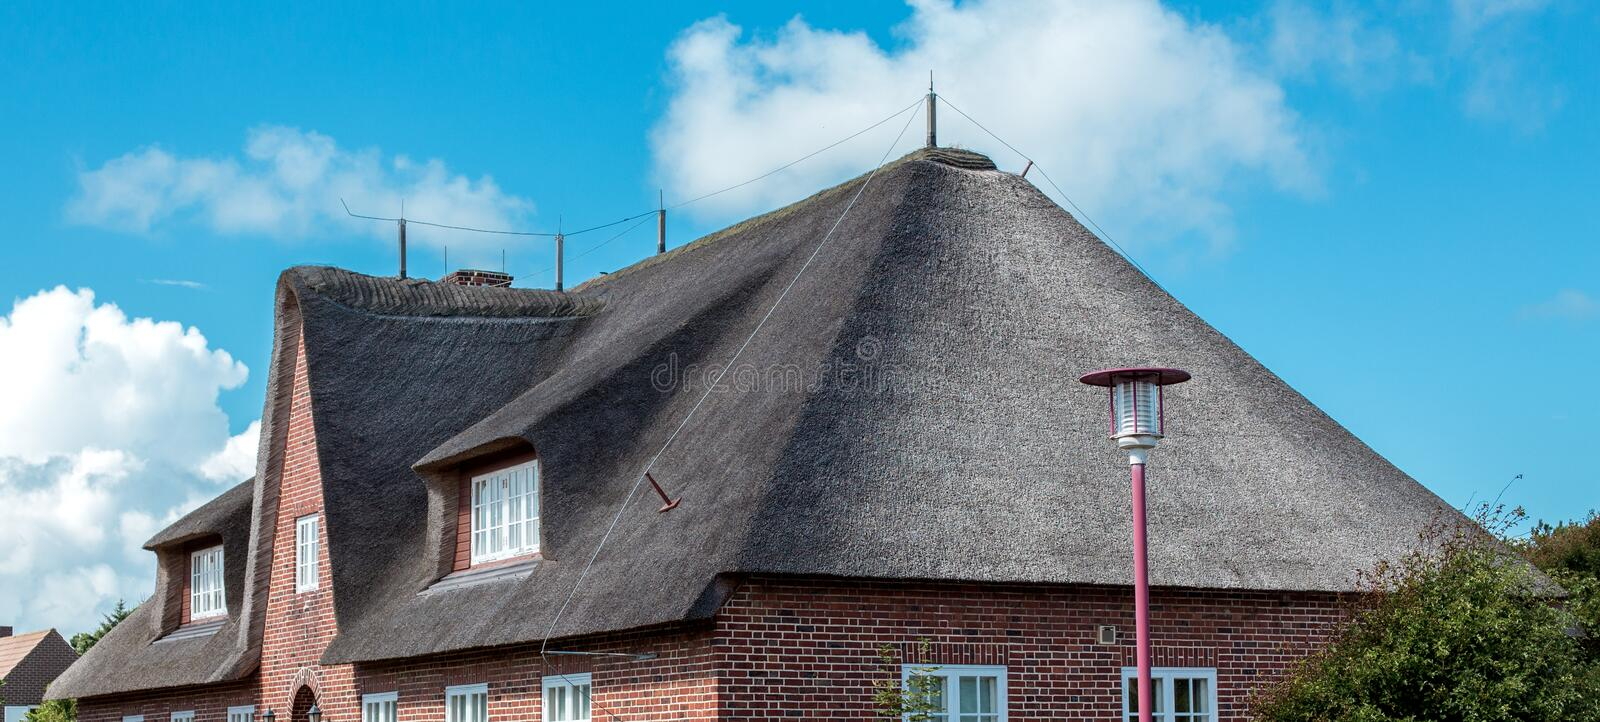 Tetto Thatched immagini stock